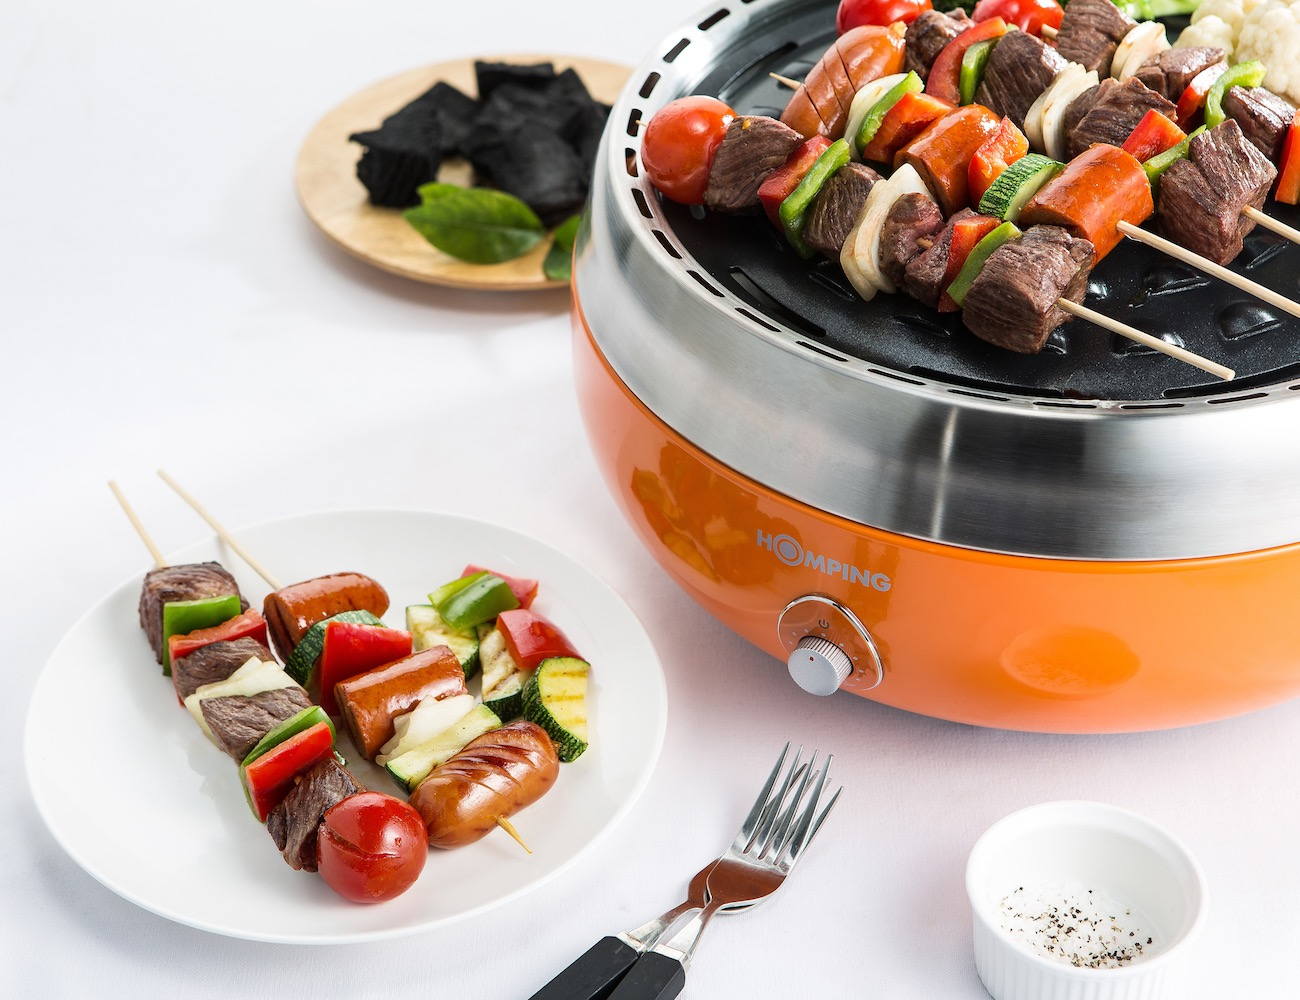 Homping Grill - Ultimate Portable Charcoal BBQ Grill » Gadget Flow